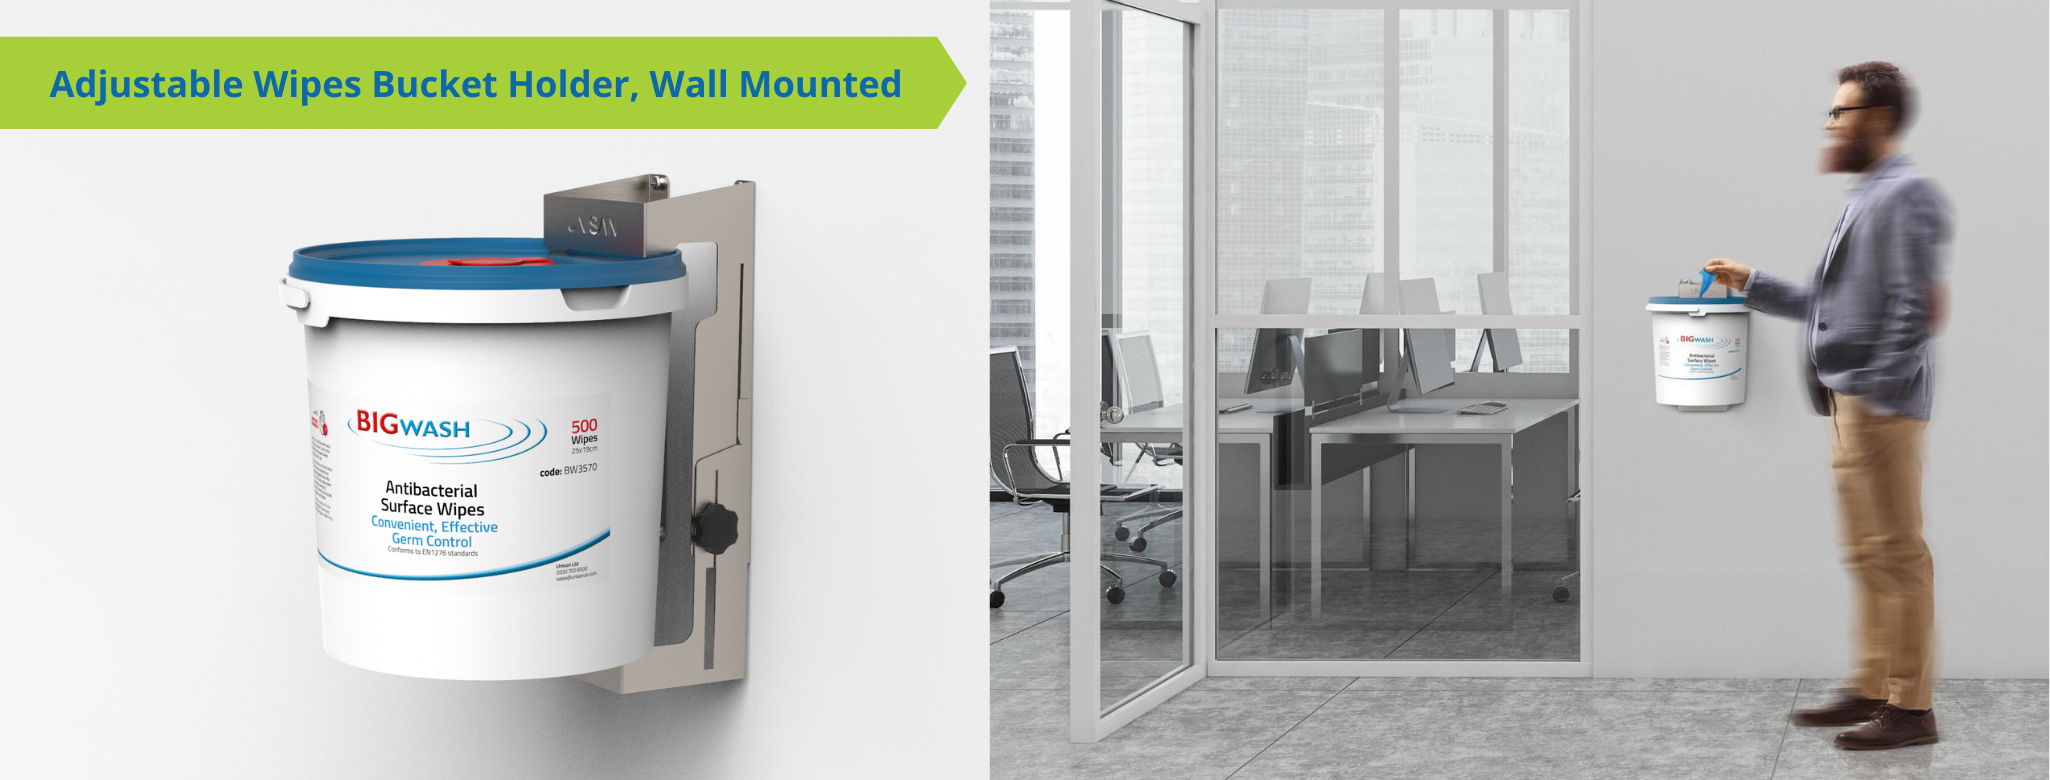 wall mount wipe holder for buckets or tubs